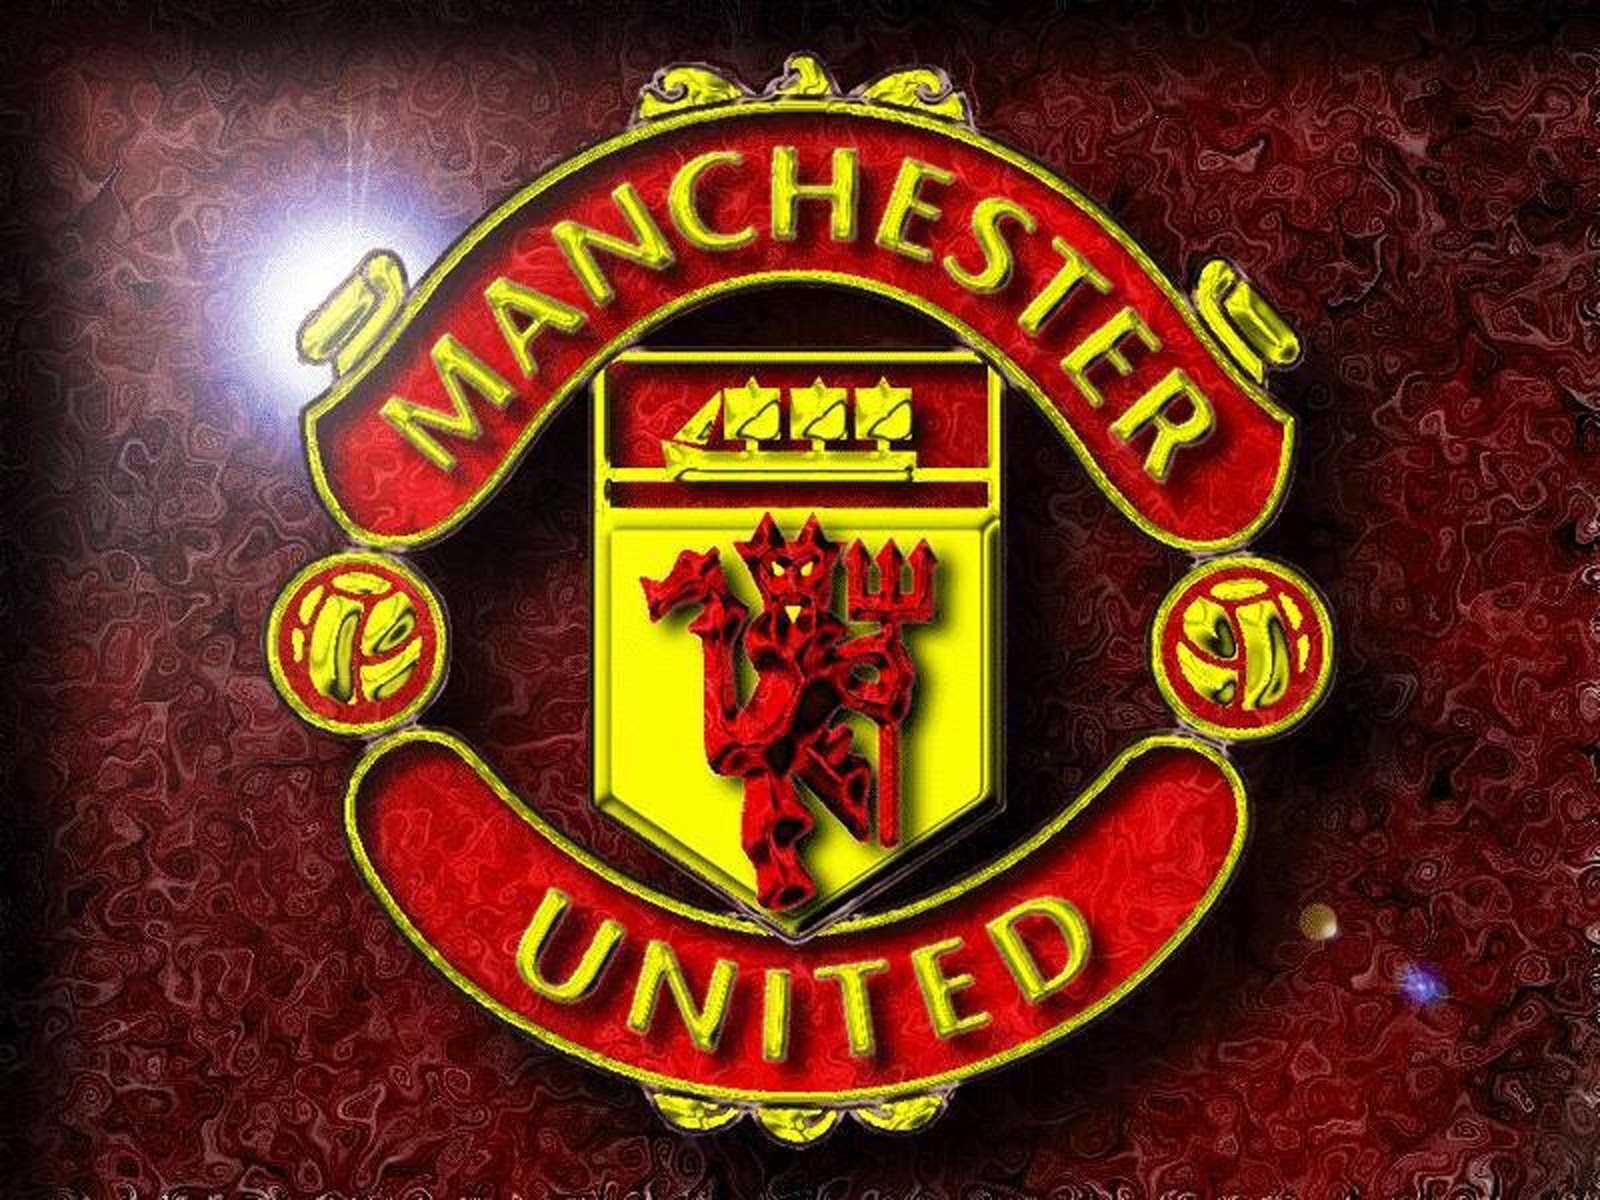 manchester united soccer club Hampshire united soccer club 336 likes hampshire united soccer club is a travel soccer club for players u13 through u19 in the southern nh region.